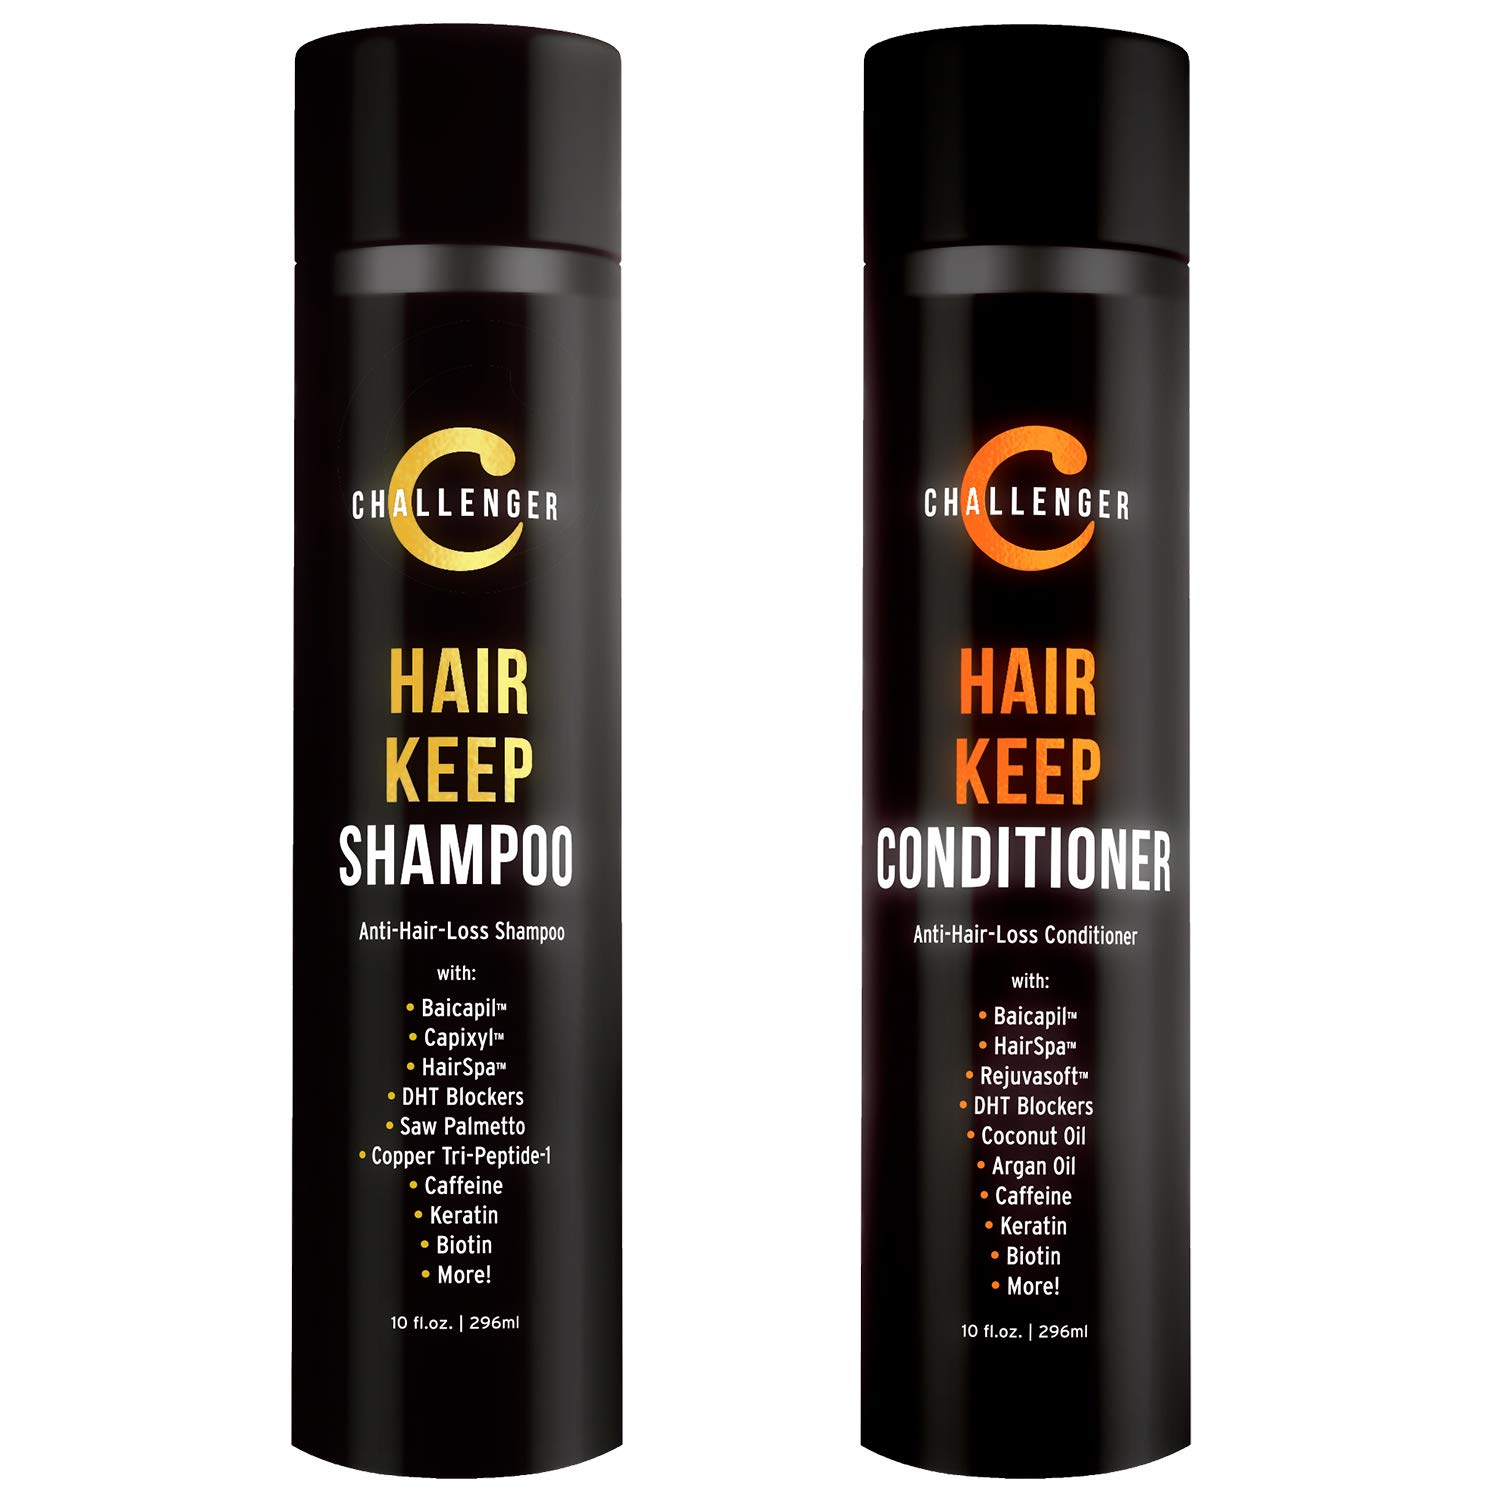 New Hair Keep Combo - Hair Growth Shampoo & Conditioner - Challenger DHT Blocking Premium Combo - w/Baicapil, Capixil, Rejuvasoft, HairSpa, Caffeine, Biotin, Argan Oil, Coconut Oil & more! by Challenger